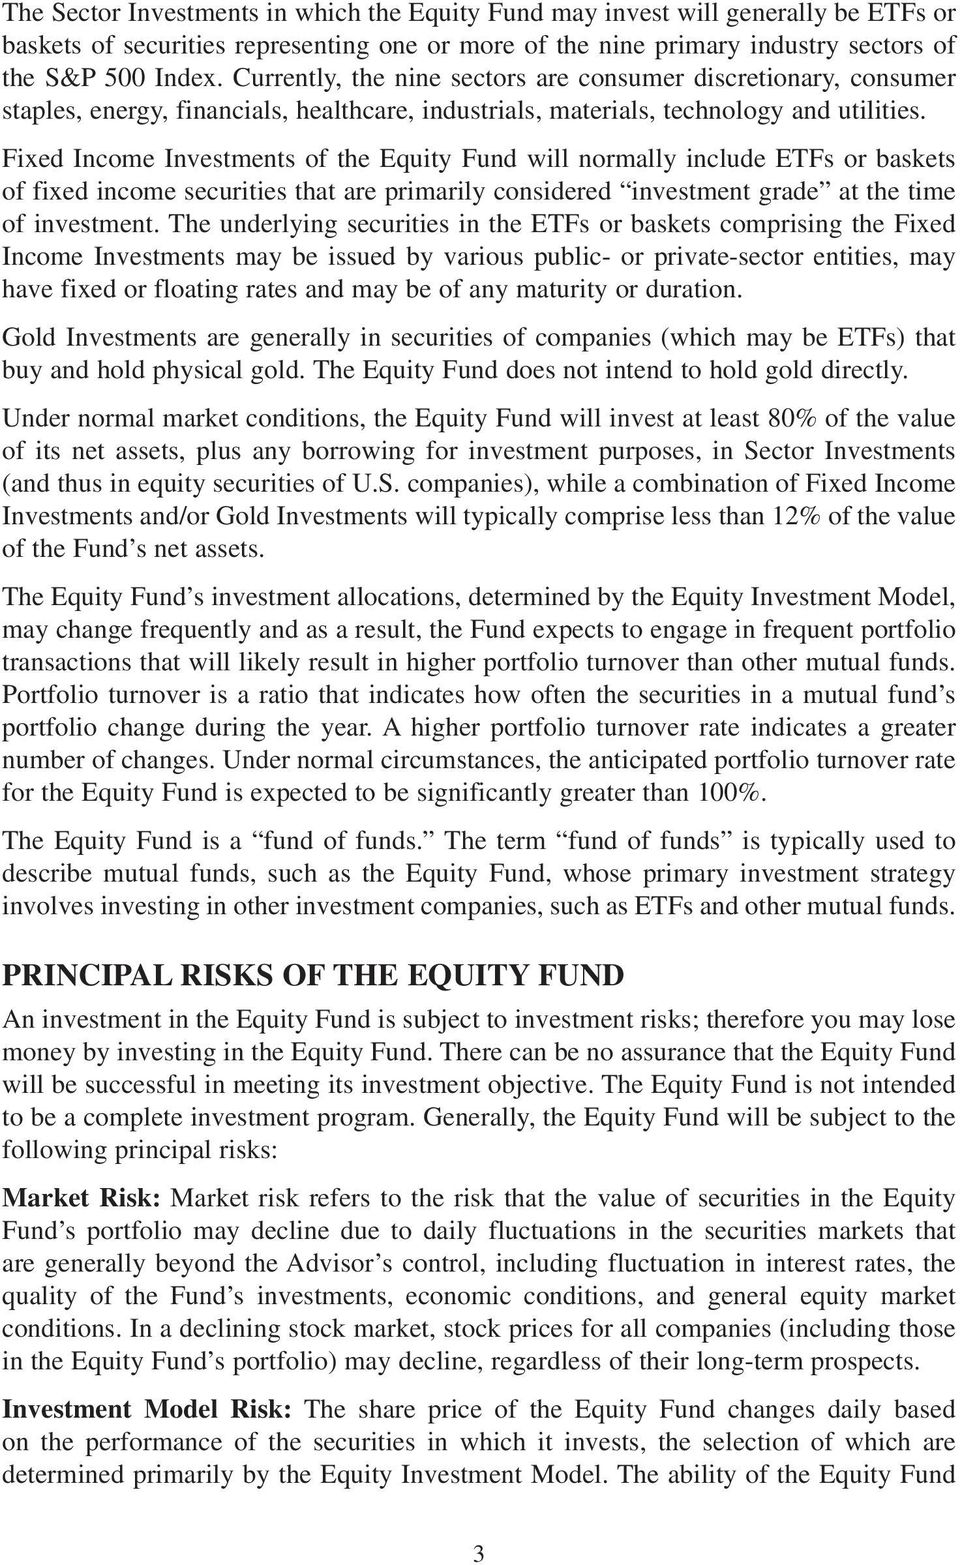 Fixed Income Investments of the Equity Fund will normally include ETFs or baskets of fixed income securities that are primarily considered investment grade at the time of investment.